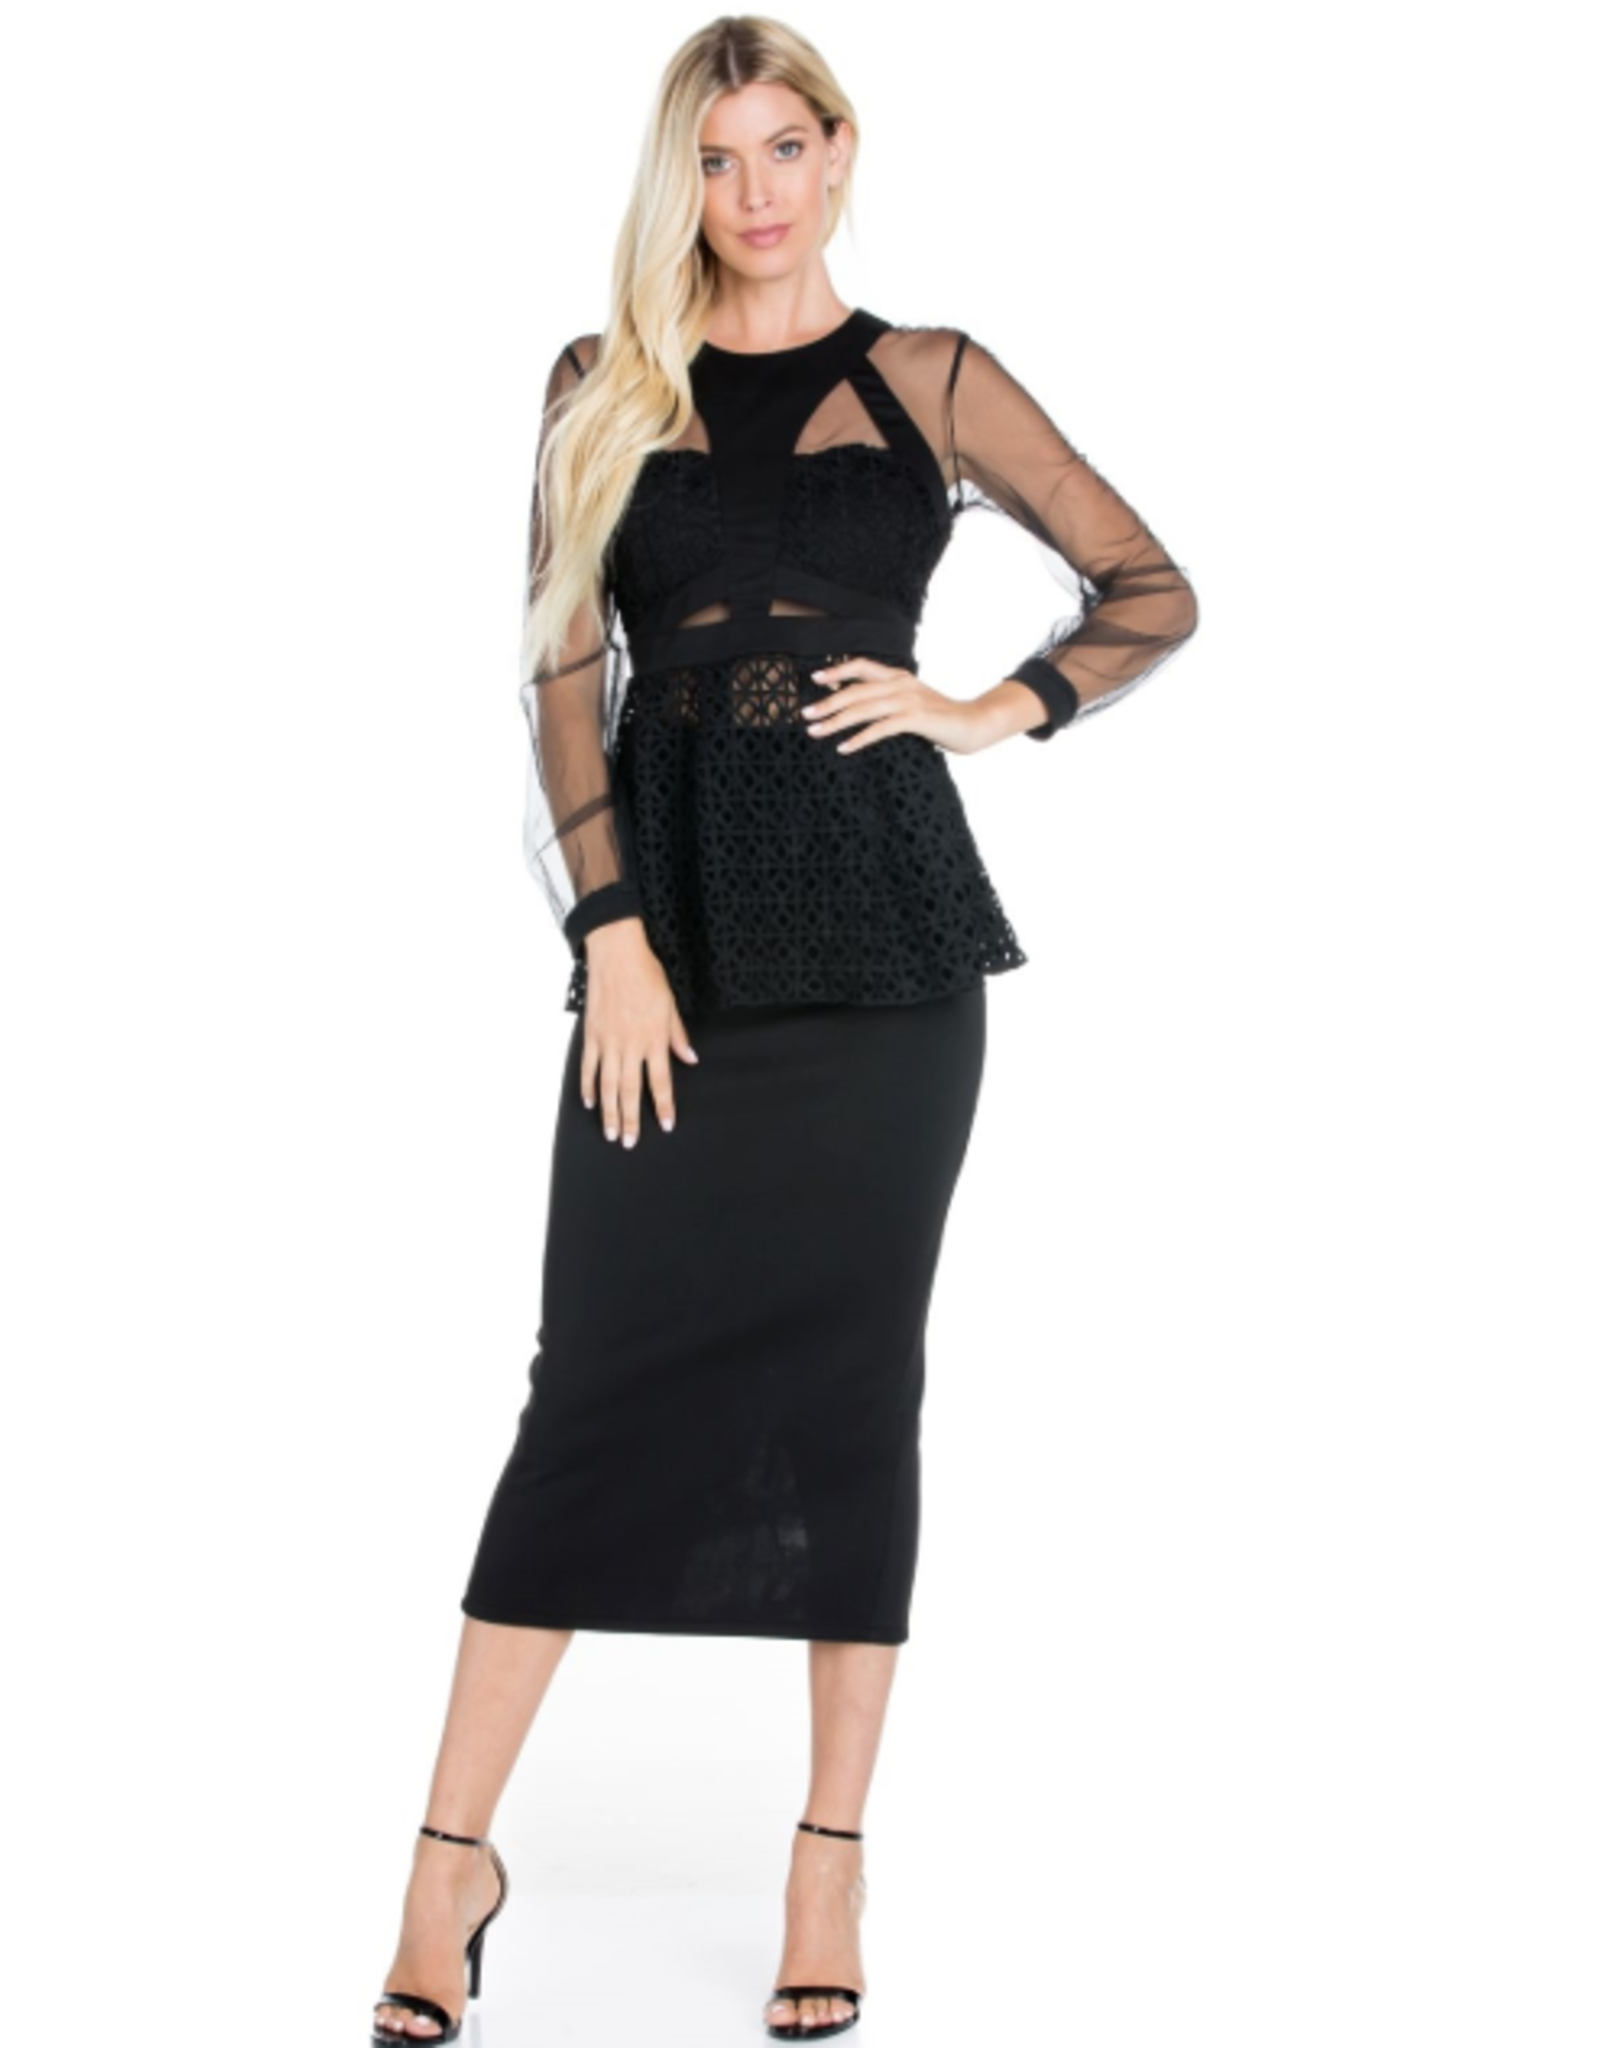 Black Mesh and Crochet Lace Long Sleeves Peplum Top and Skirt